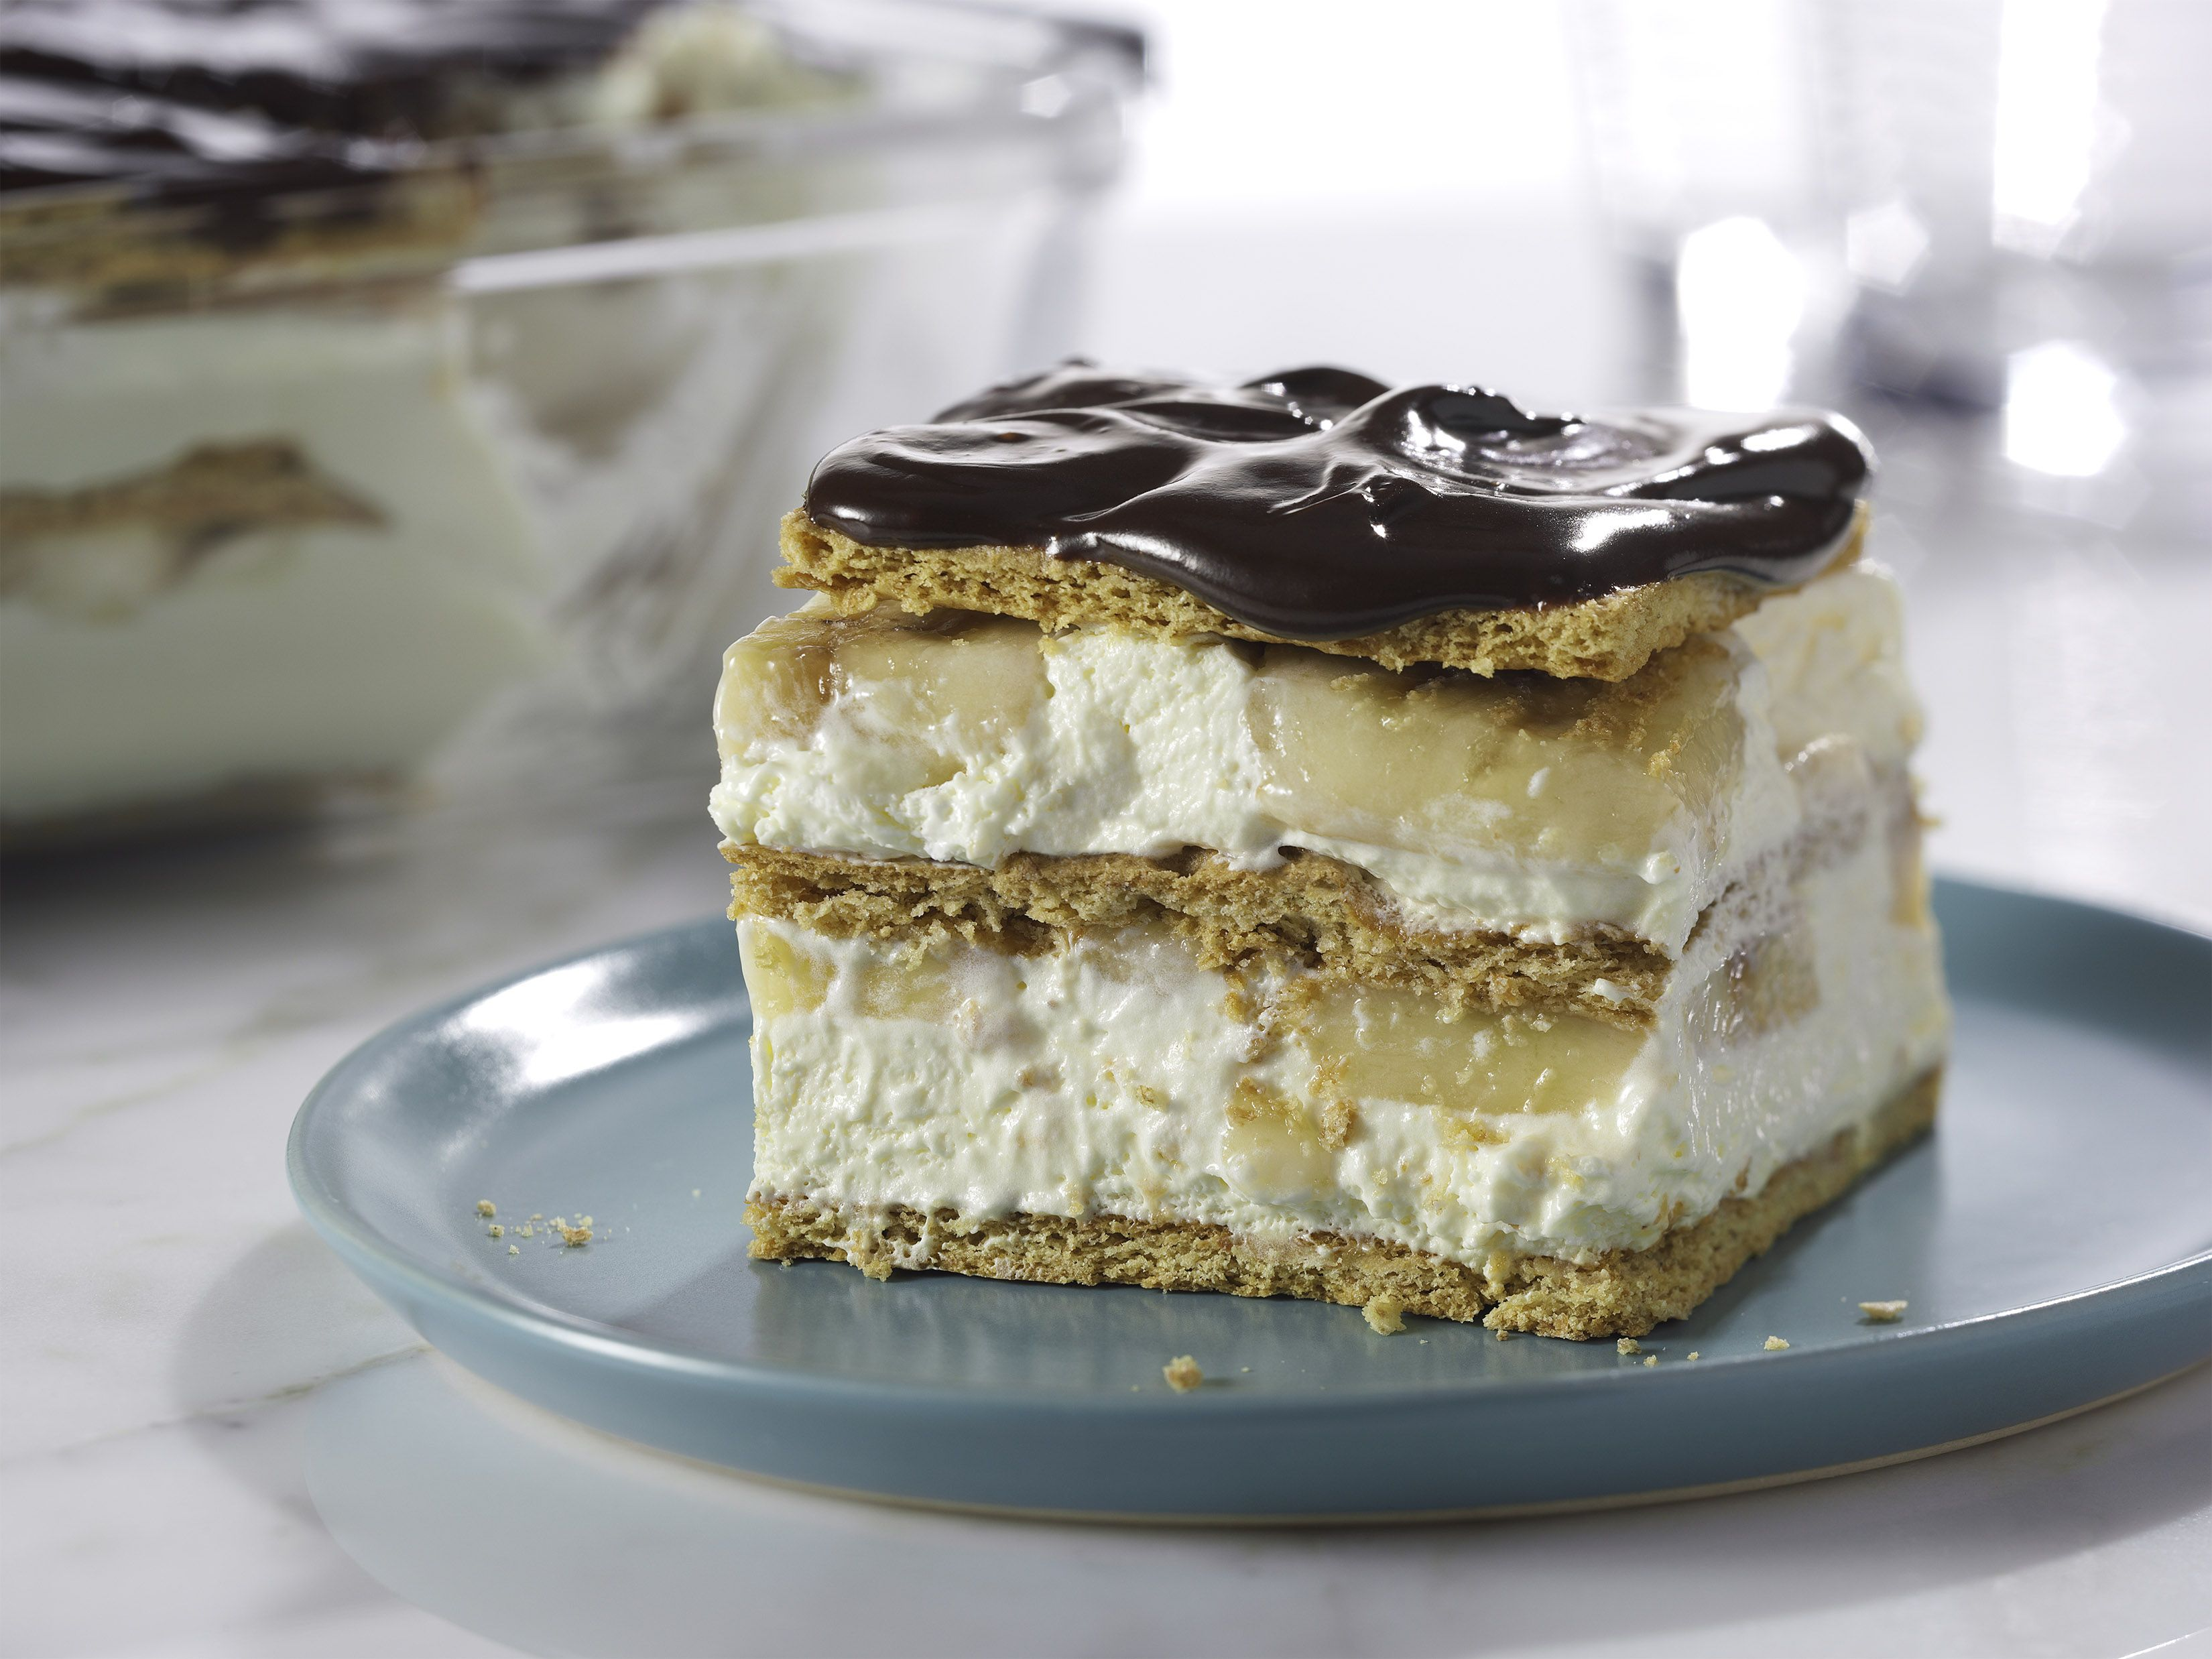 """No-Bake Banana Éclair """"Cake"""" – The hardest part of this easy dessert recipe? Waiting for it to cool in the refrigerator. Great taste and no-bake! #PinThatTwist"""